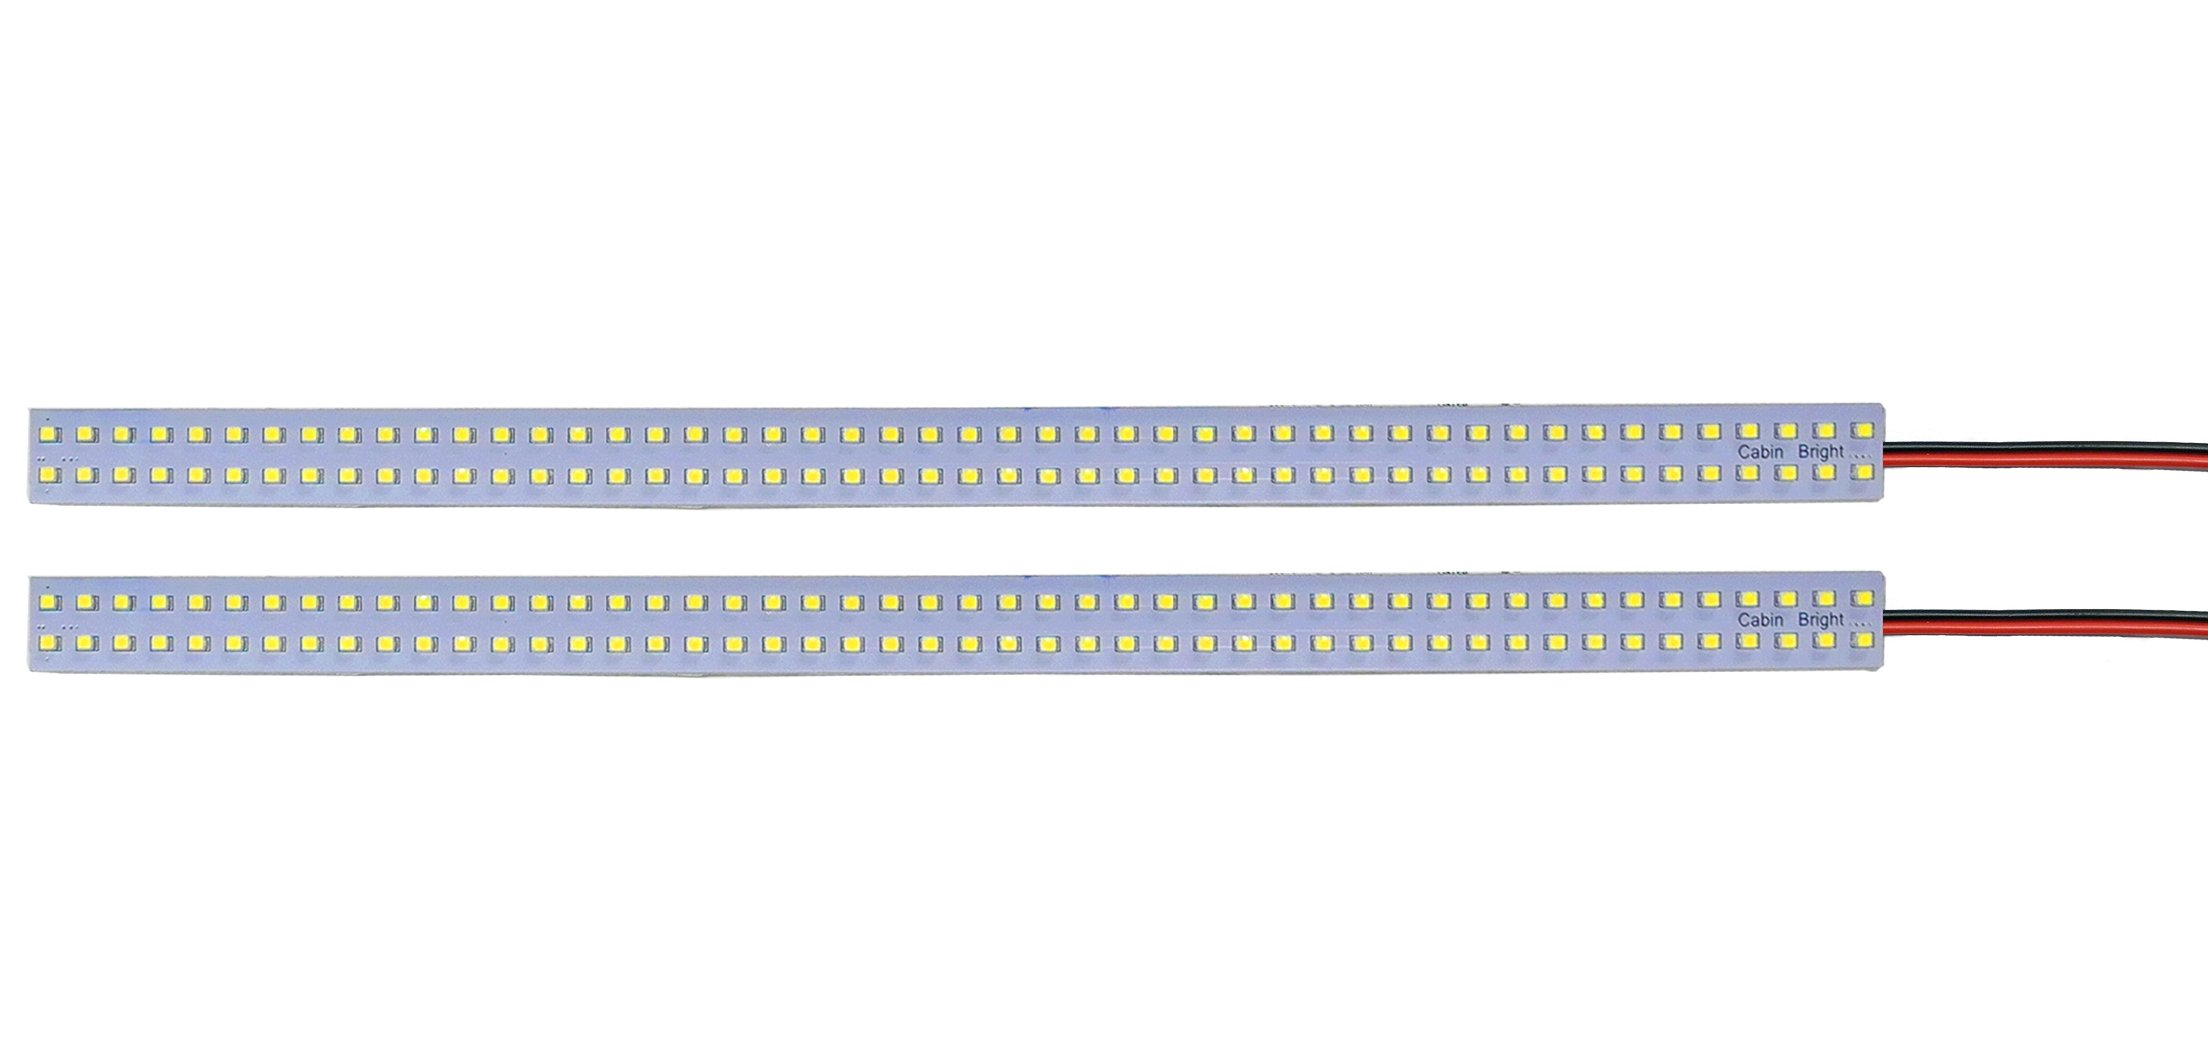 Cabin Bright FLED/R18-192 LED Tube Replacement (15-18 Inch 12 Volt Fluorescent)